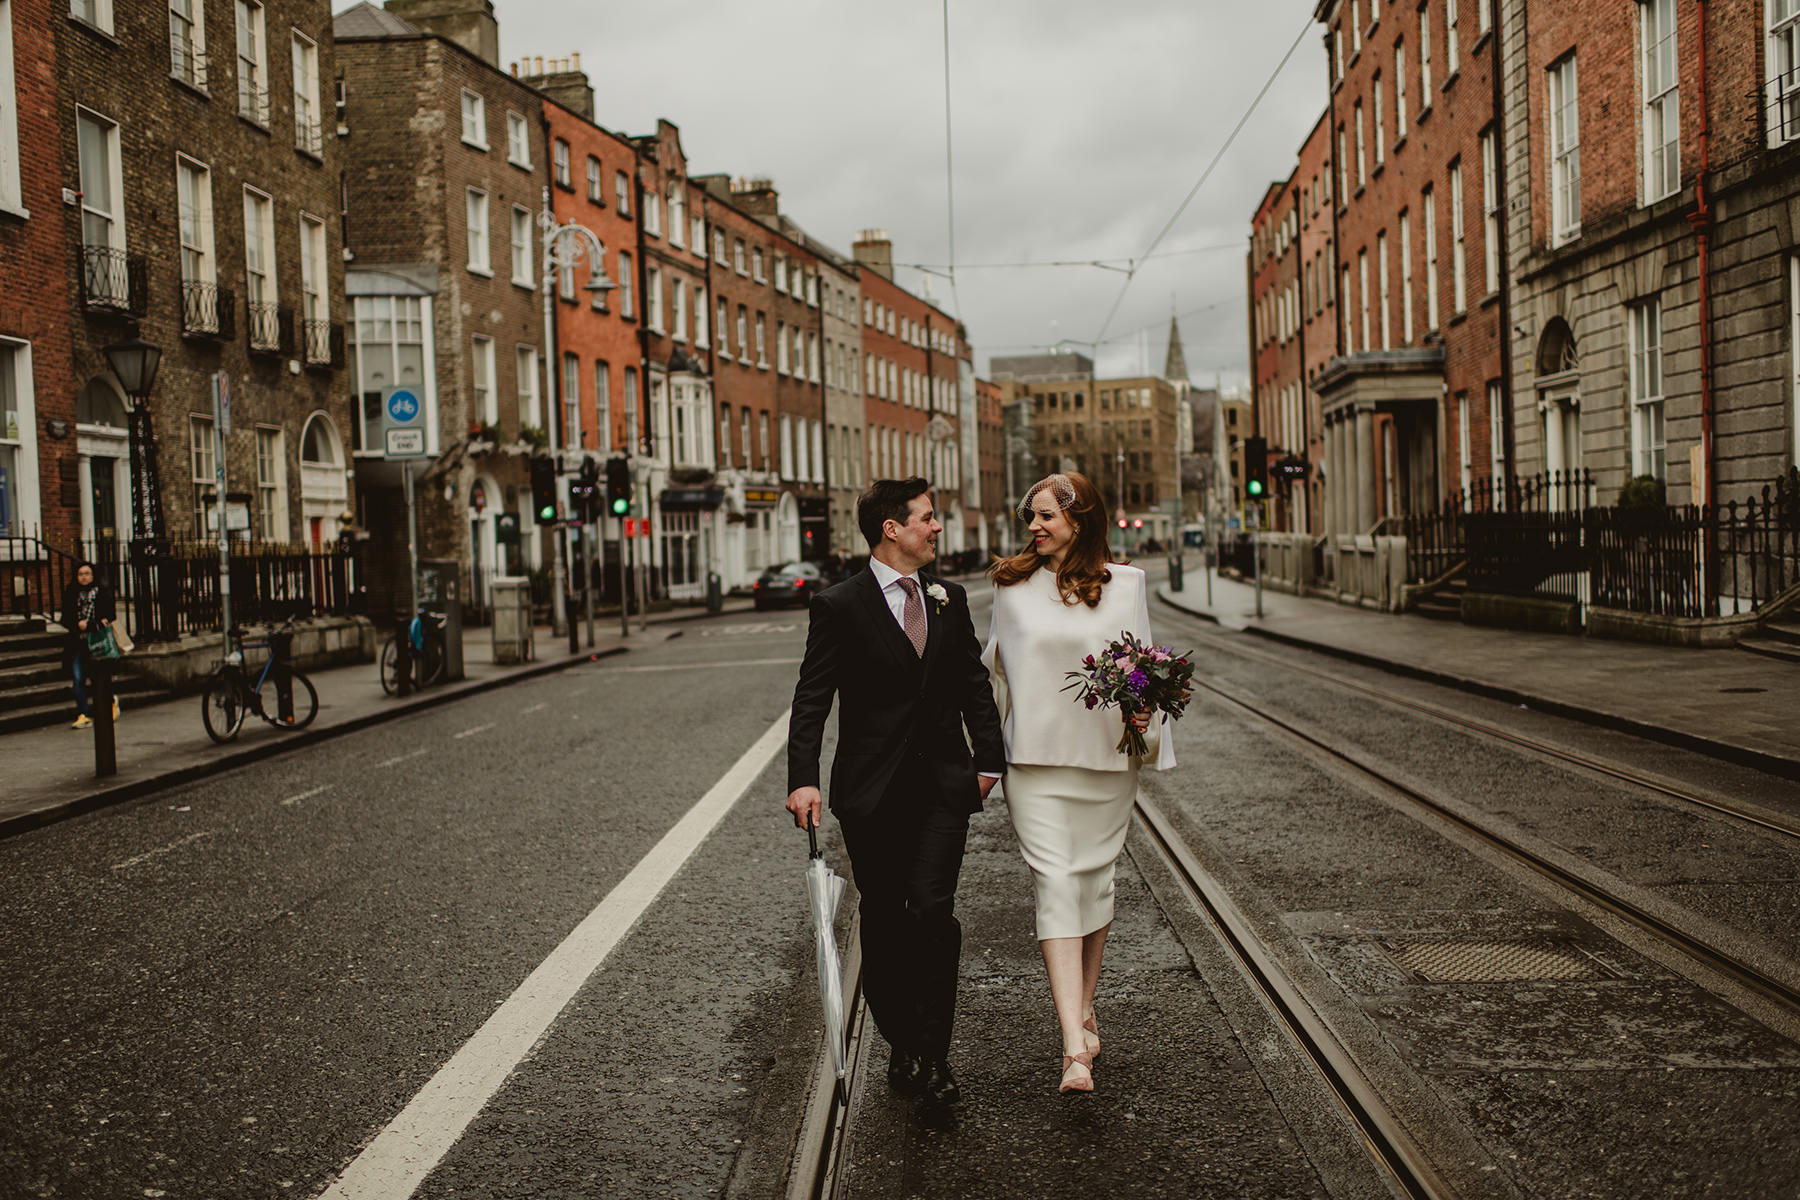 Happy bride and groom walk on Dublin street photographer by Darek Novak